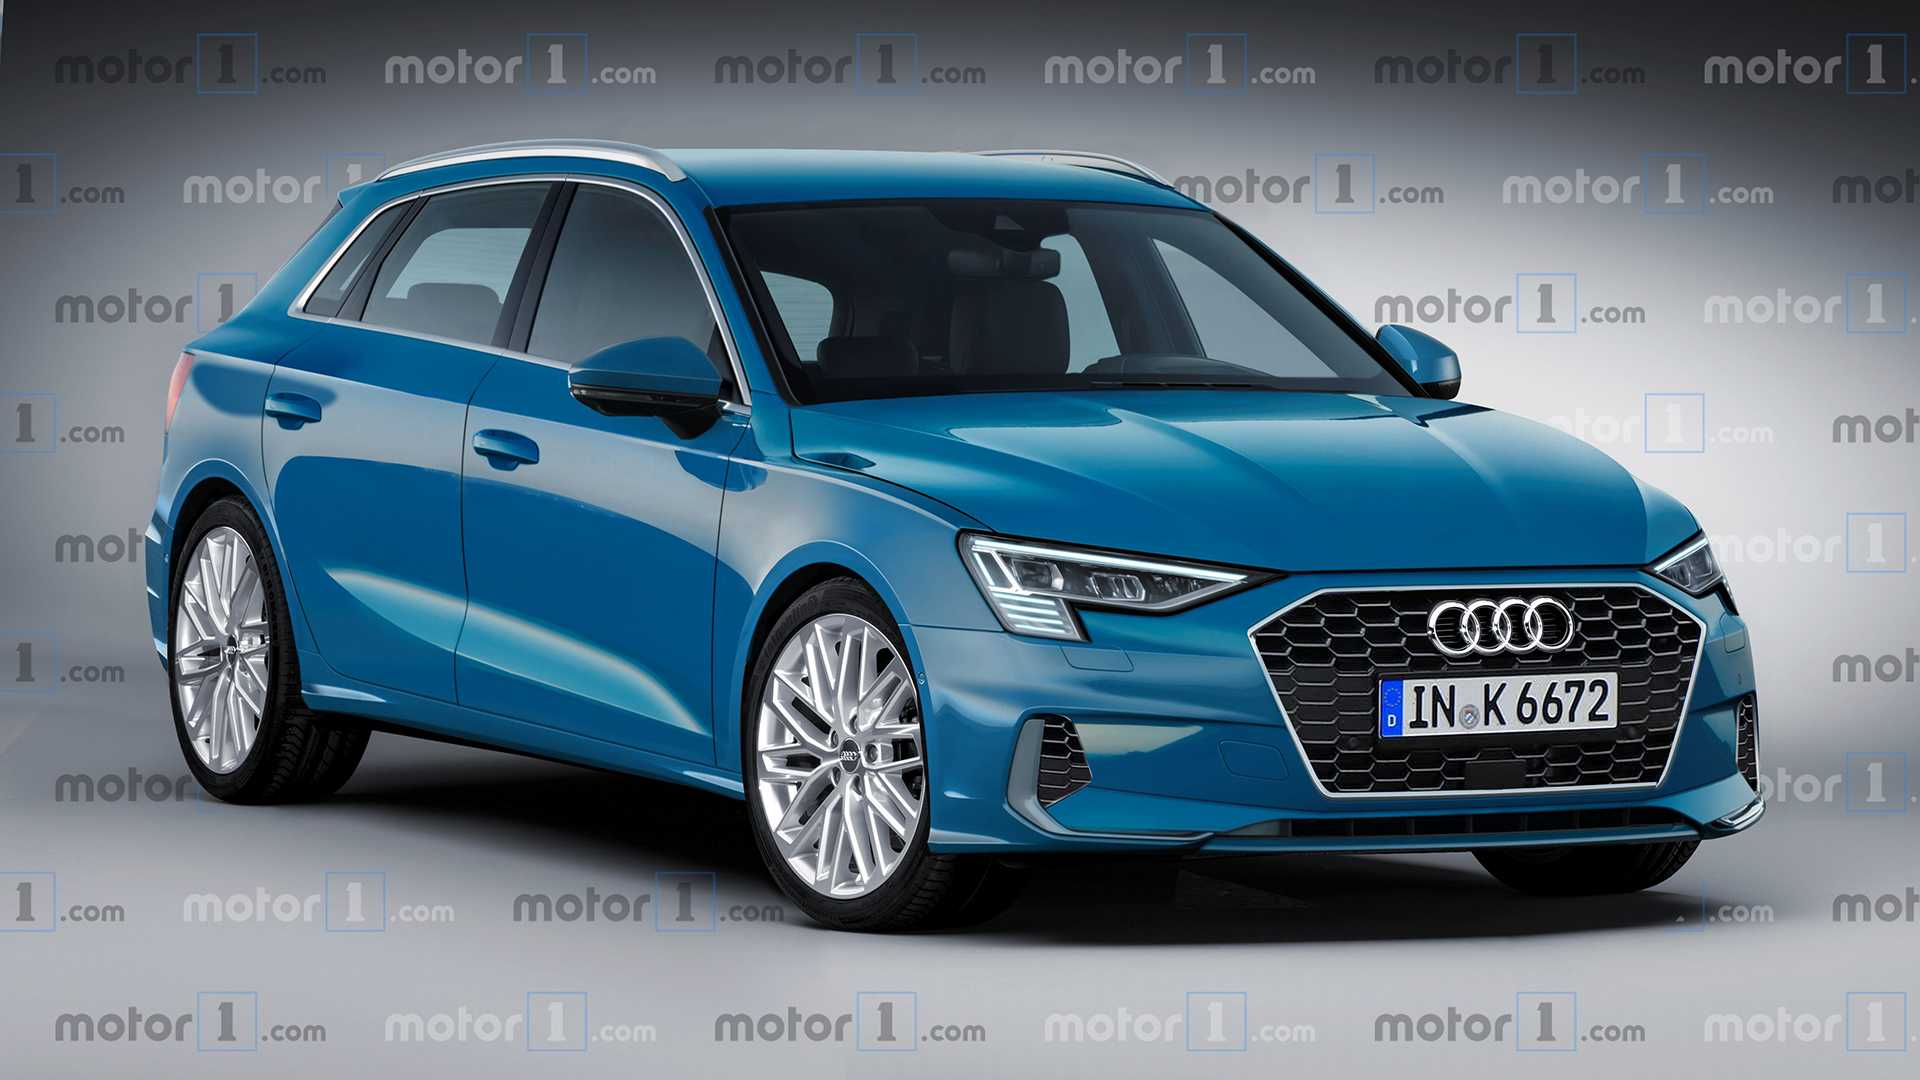 39 Gallery of Audi A3 Hatchback 2020 Wallpaper with Audi A3 Hatchback 2020